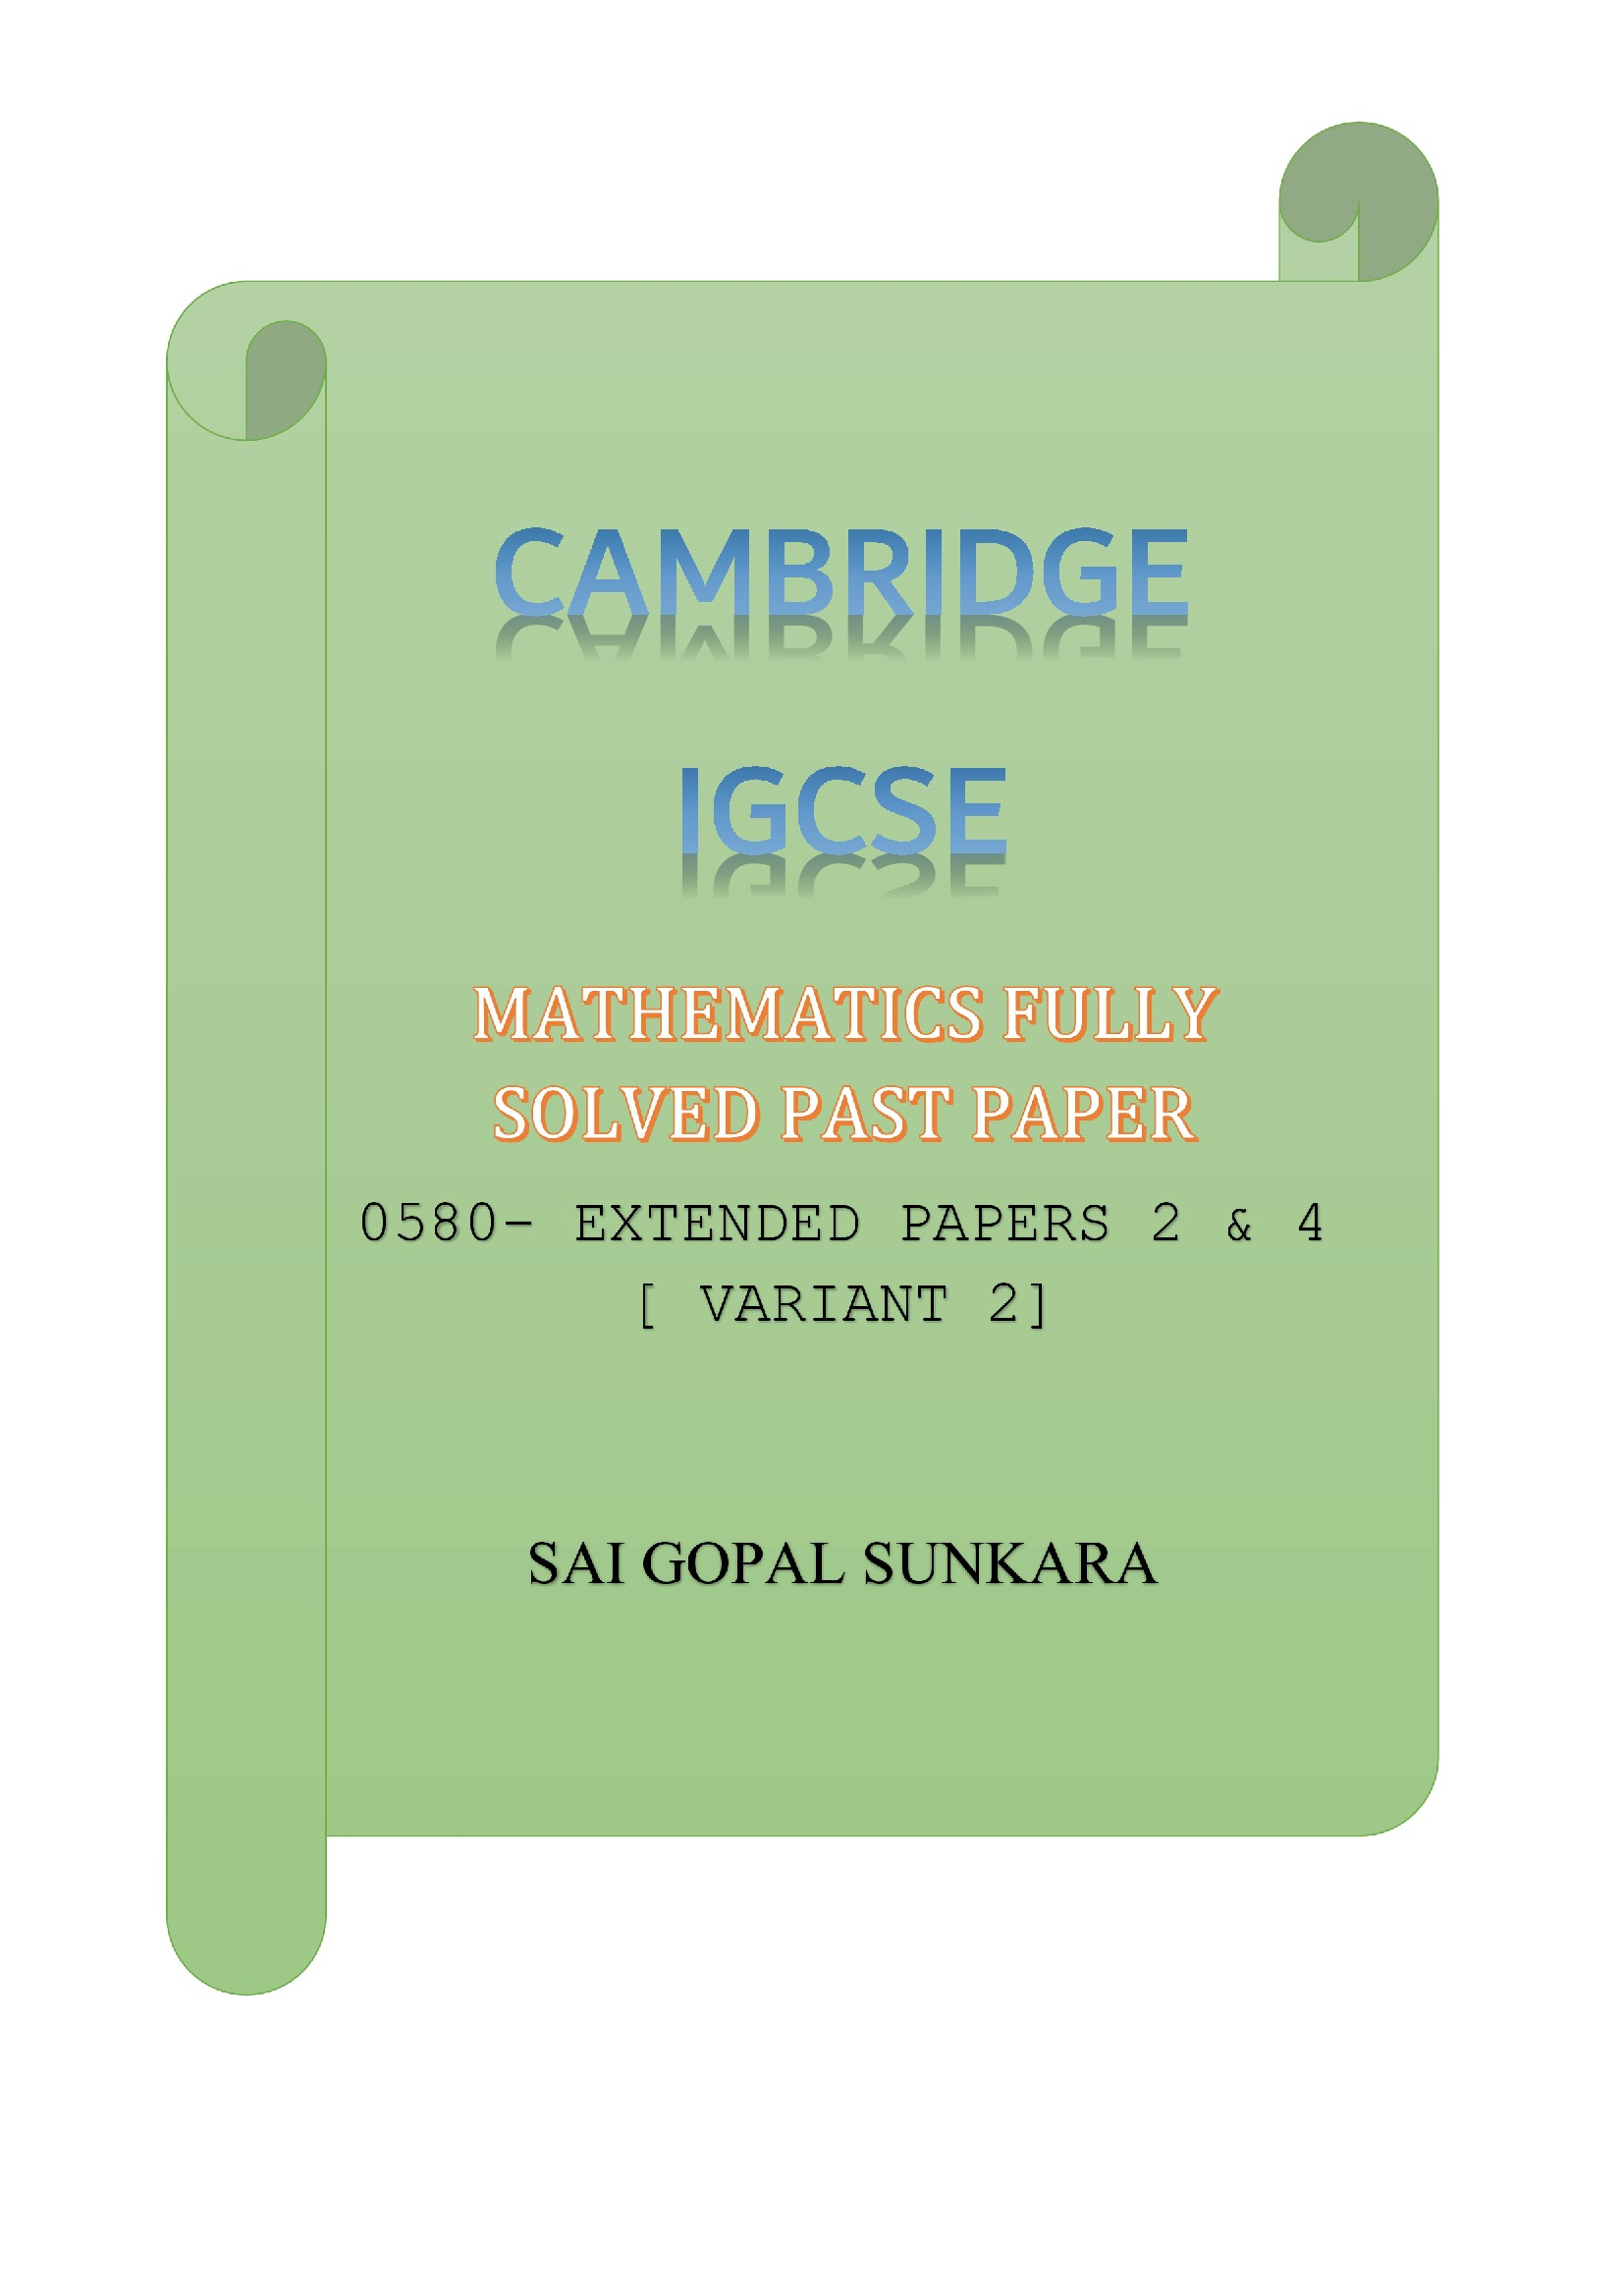 CAMBRIDGE IGCSE MATH FULLY SOLVED PAST PAPERS -EXTENDED